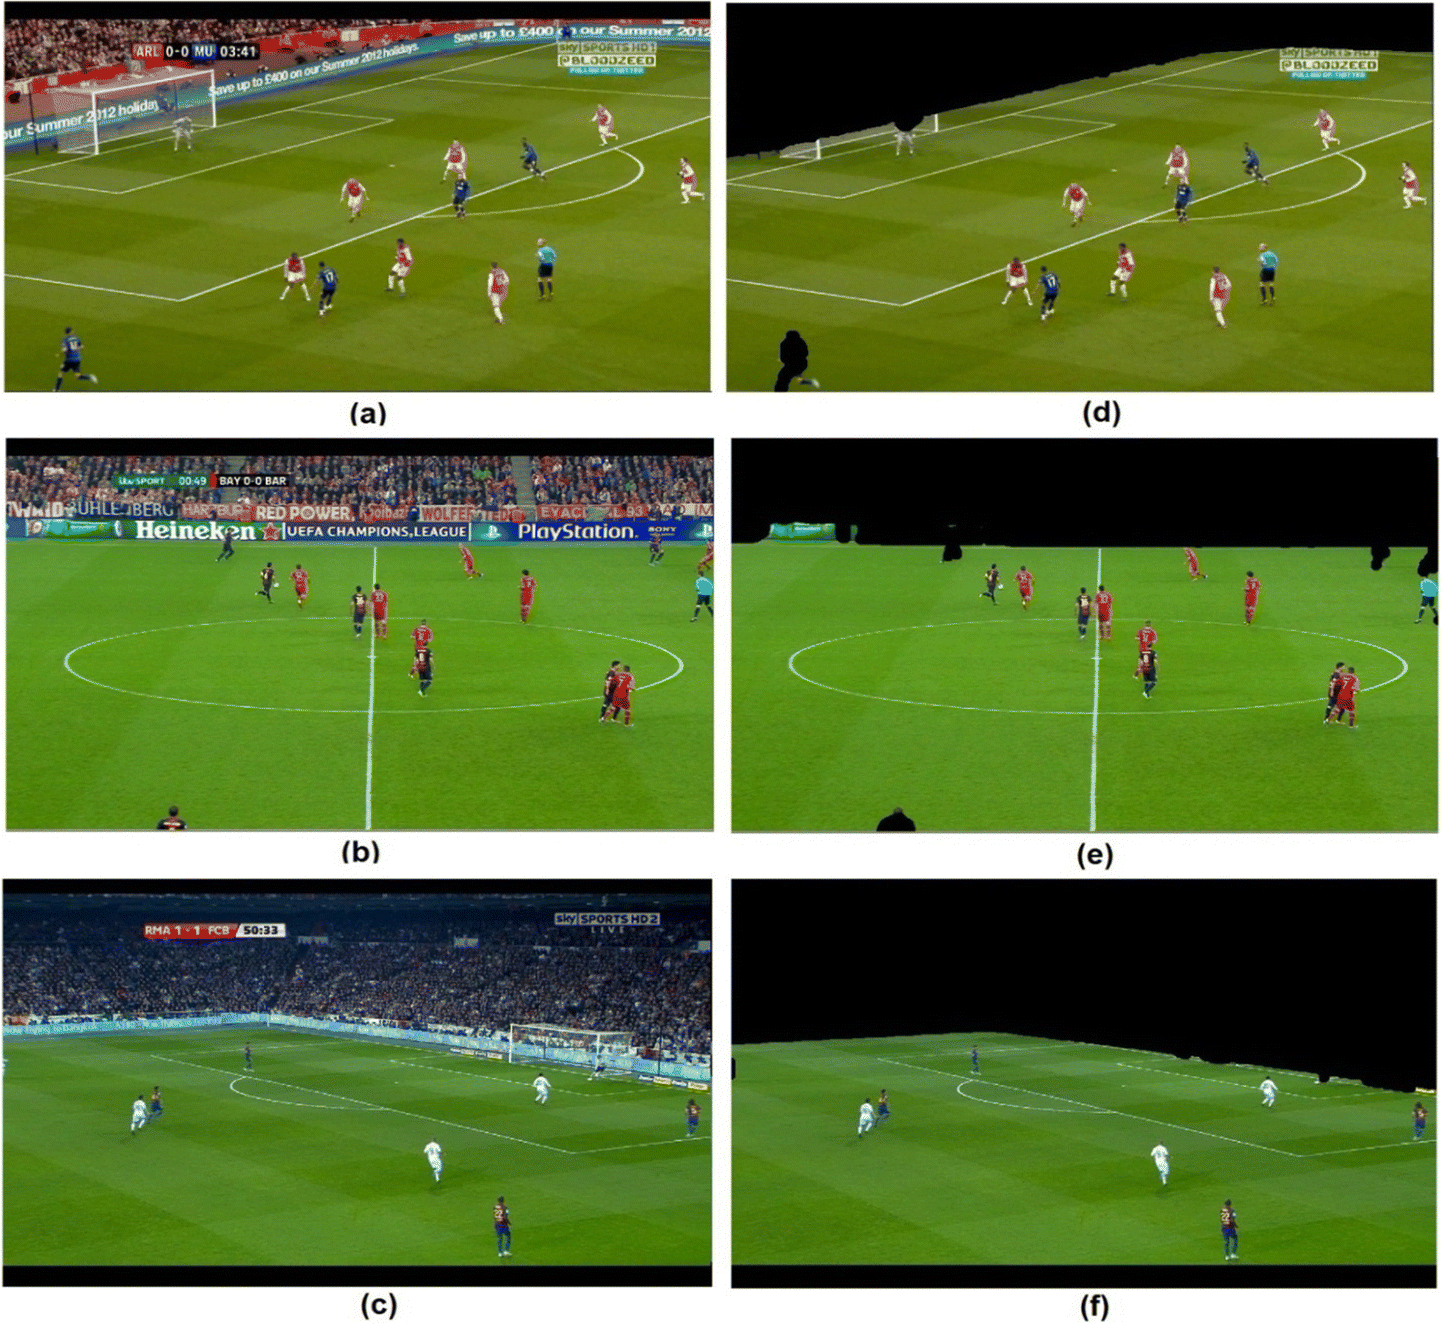 Exposing forgeries in soccer images using geometric clues | SpringerLink